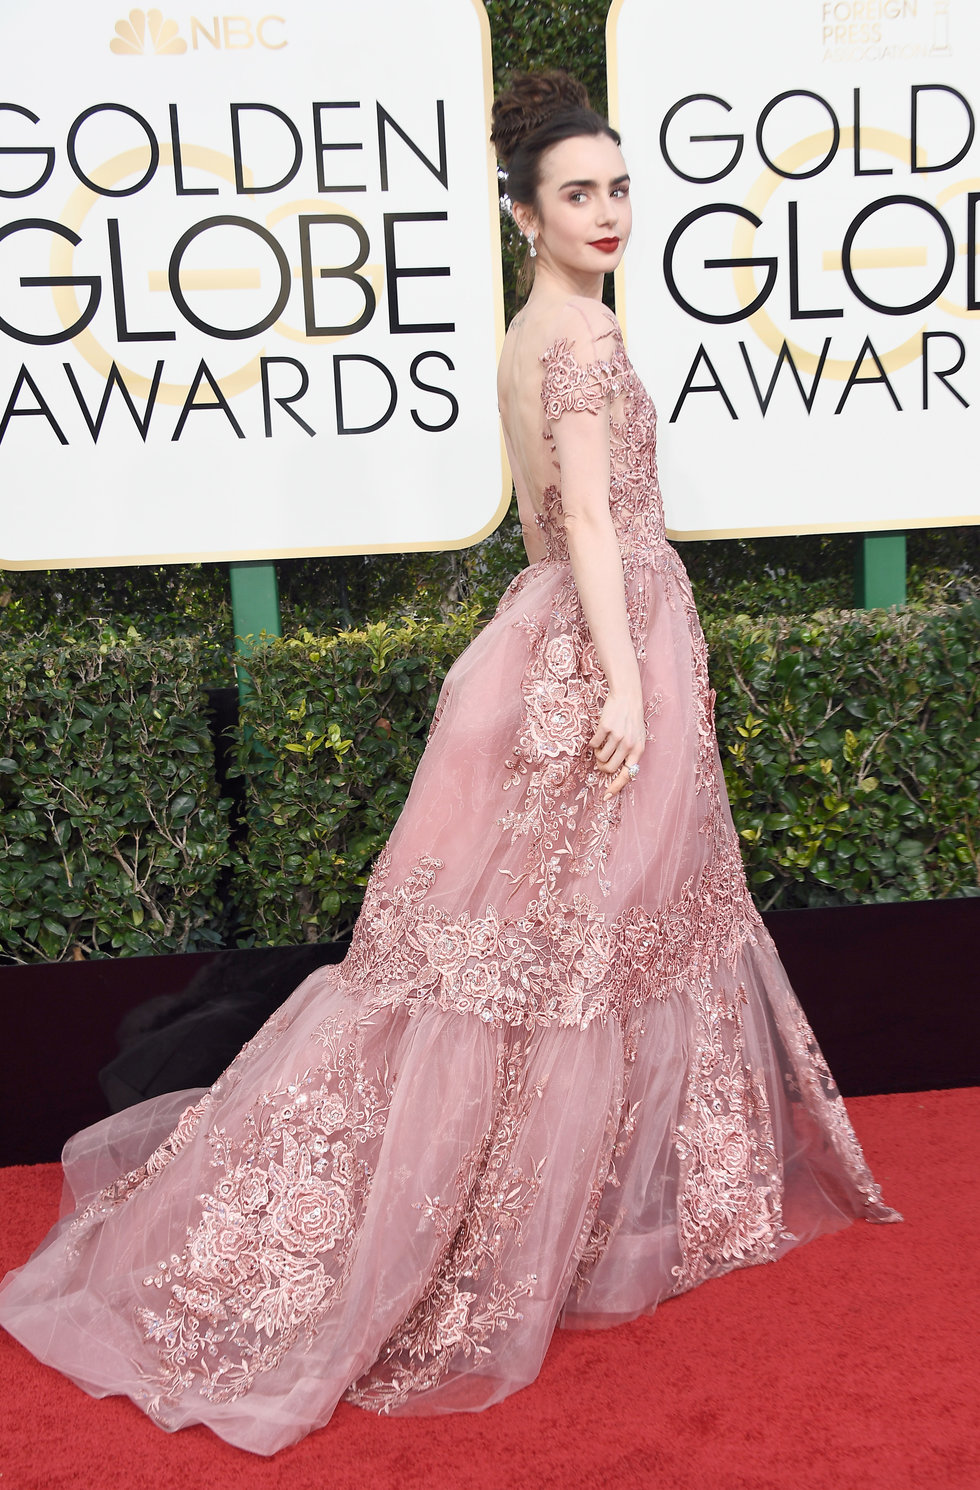 The 17 Best Dressed At Tonight's Golden Globes